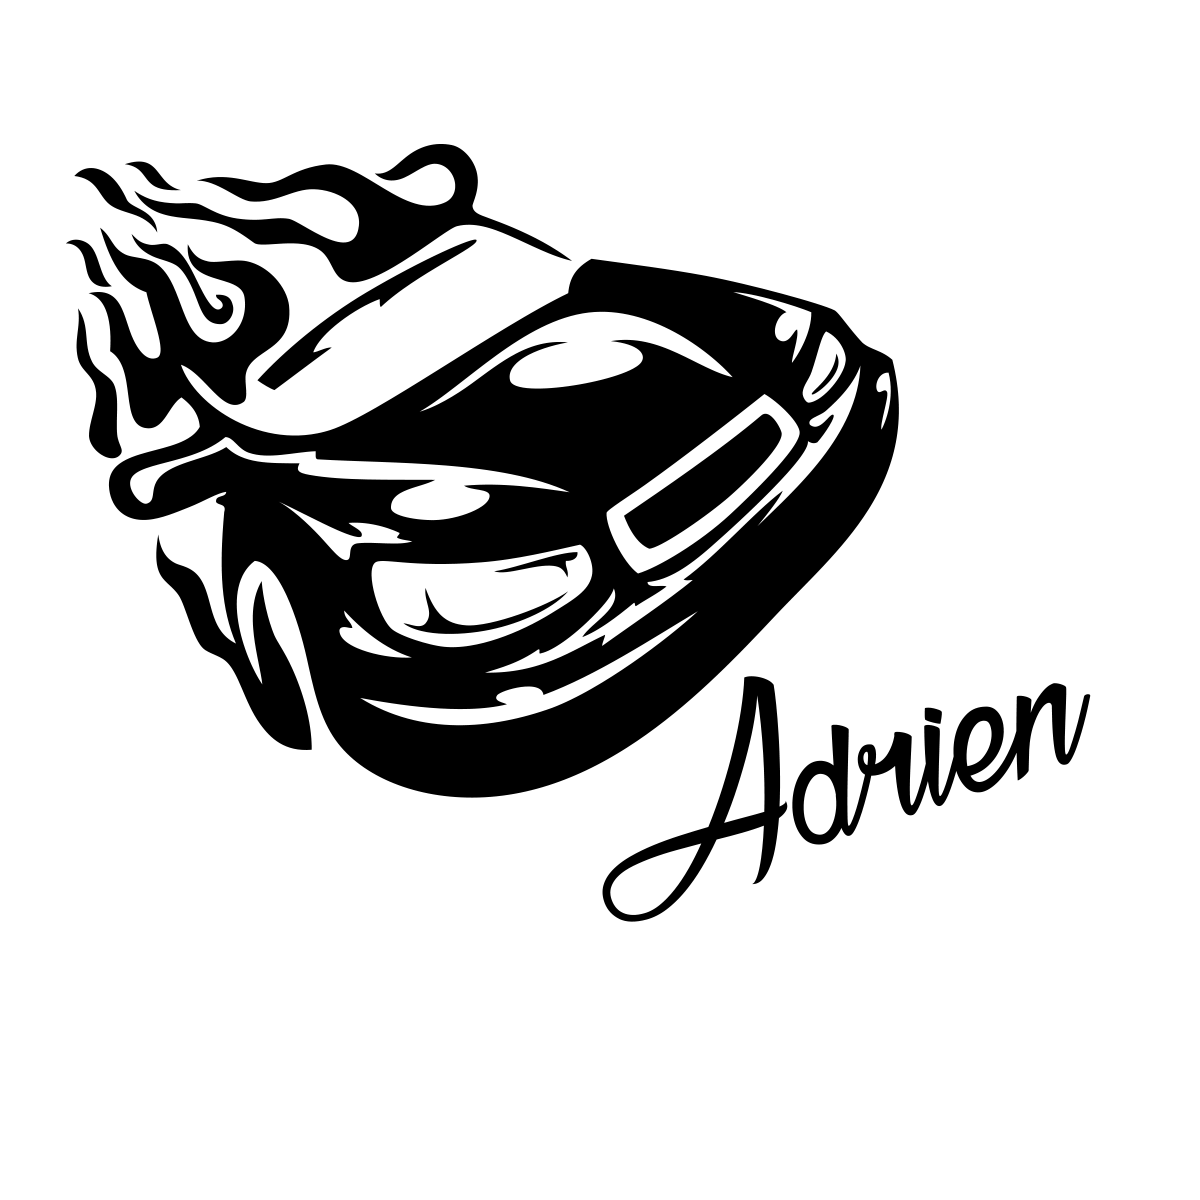 Sticker prenom personnalisable voiture de course ambiance sticker name si 0768 png